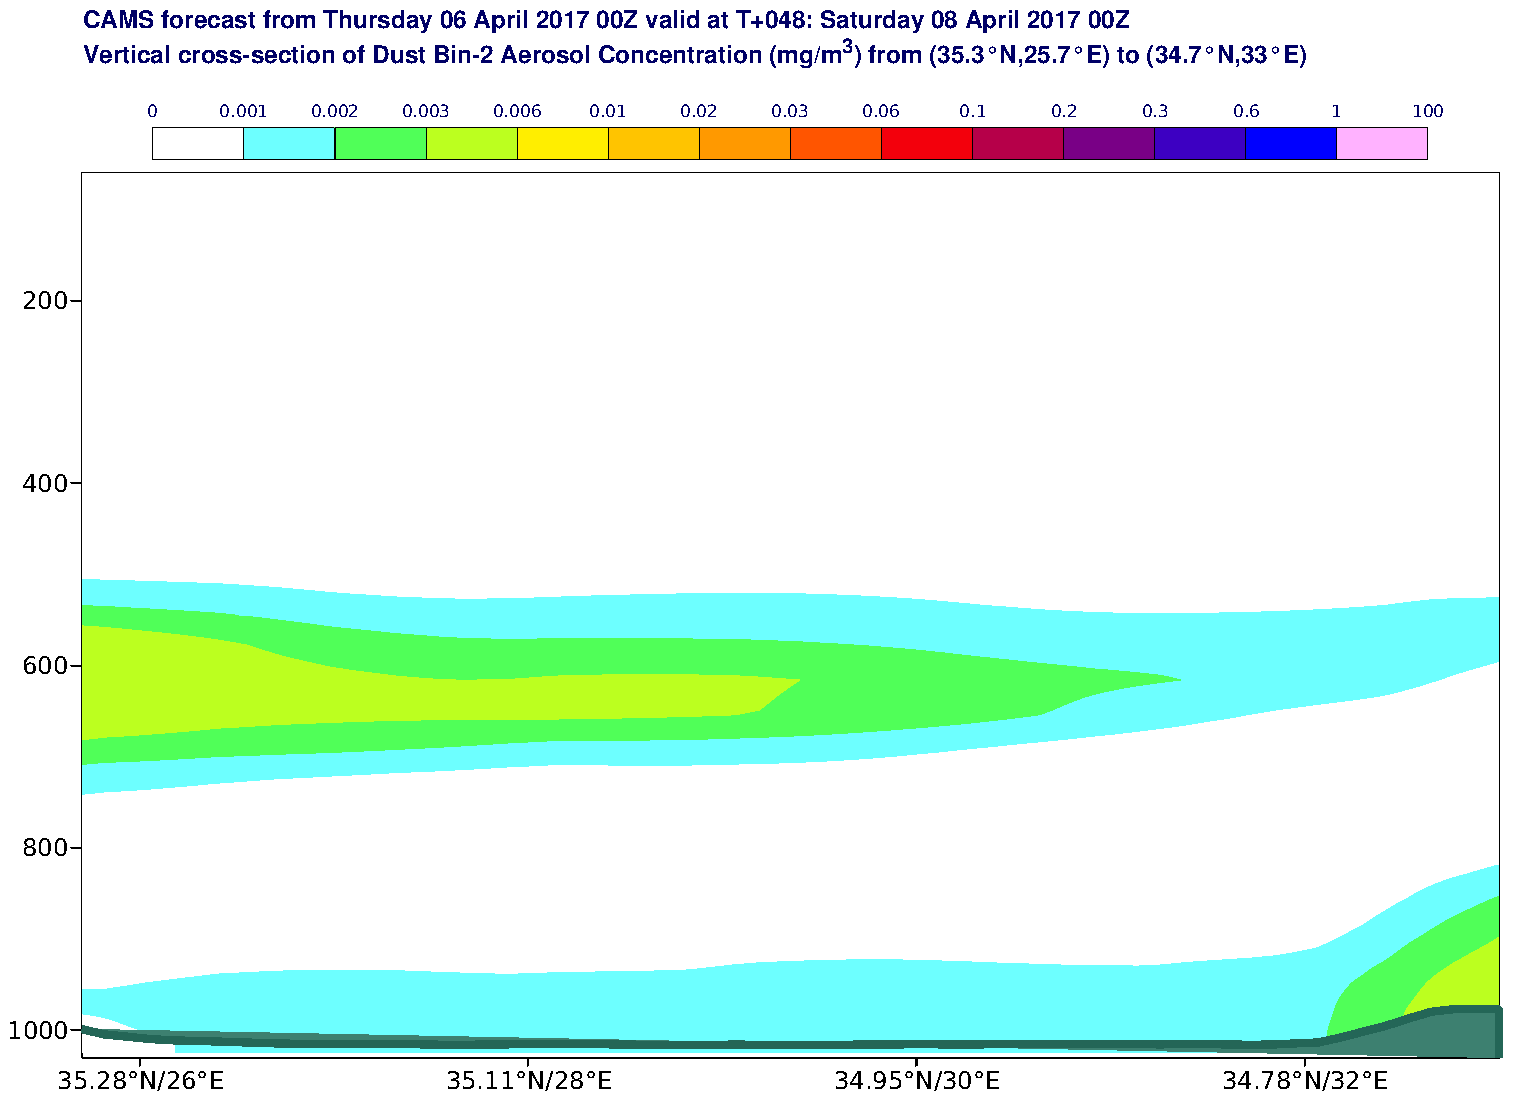 Vertical cross-section of Dust Bin-2 Aerosol Concentration (mg/m3) valid at T48 - 2017-04-08 00:00